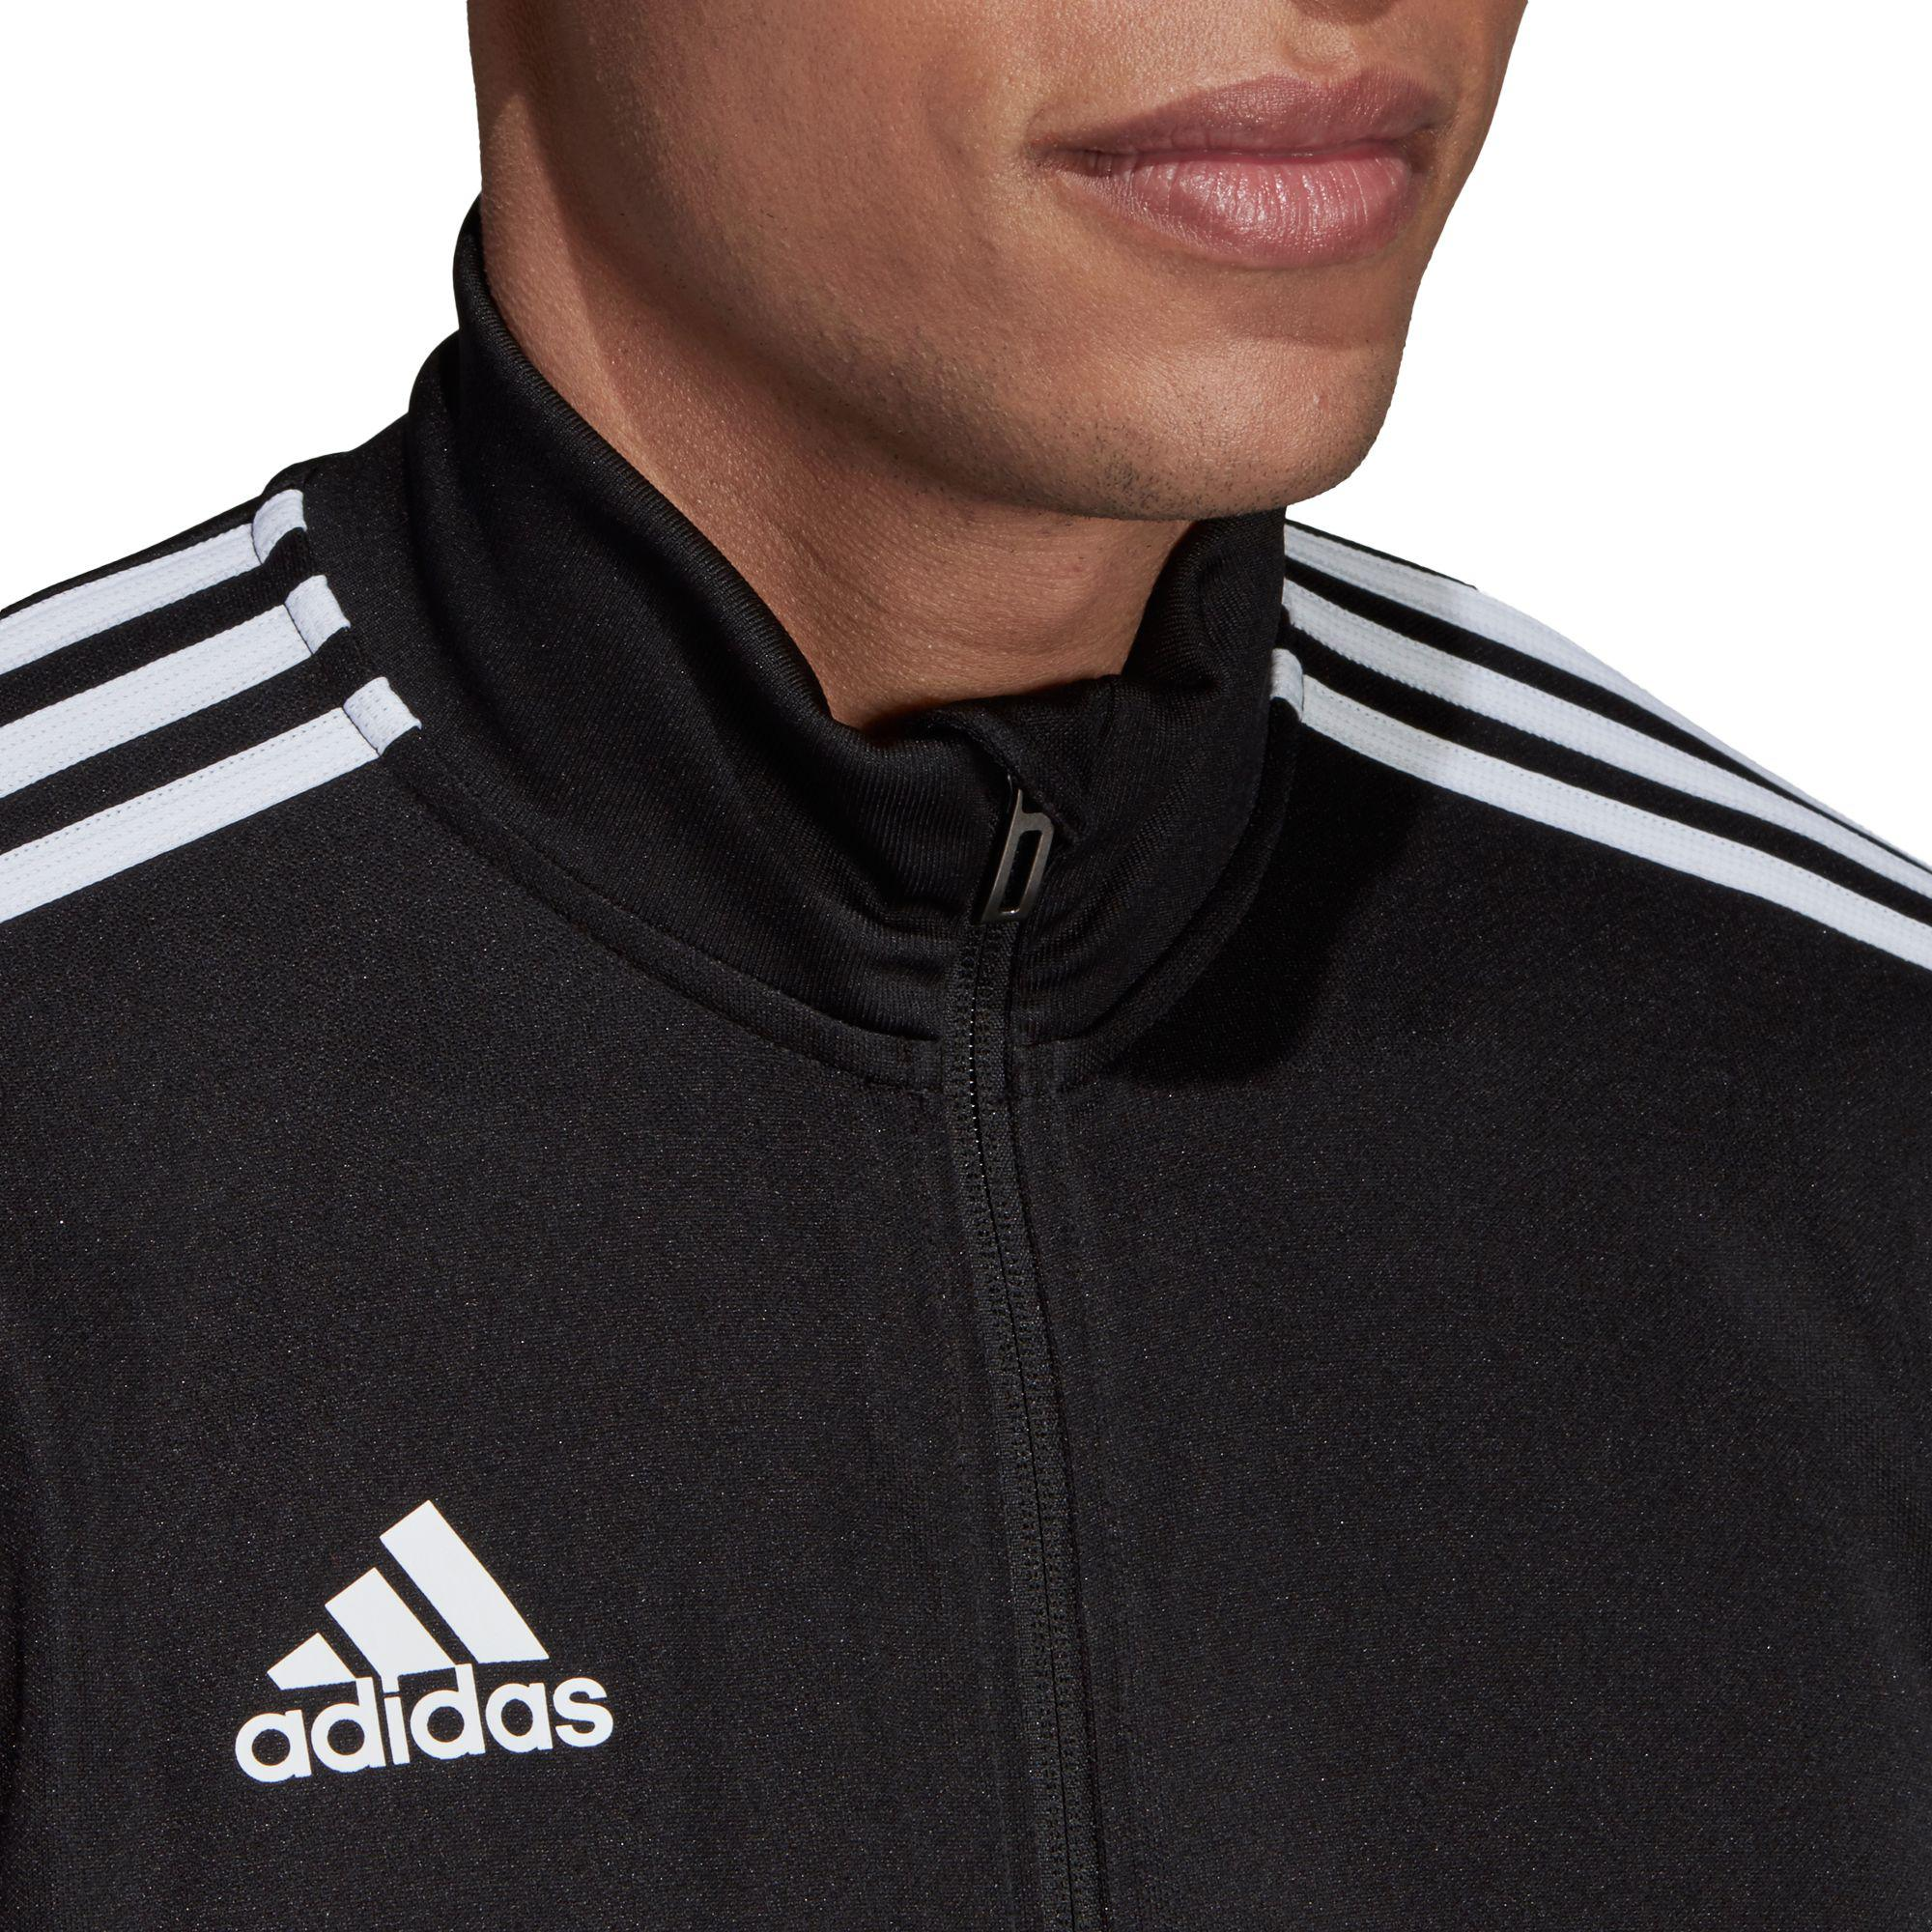 8ccaf6854d3 adidas Tiro 19 Soccer Training Jacket in Black for Men - Lyst